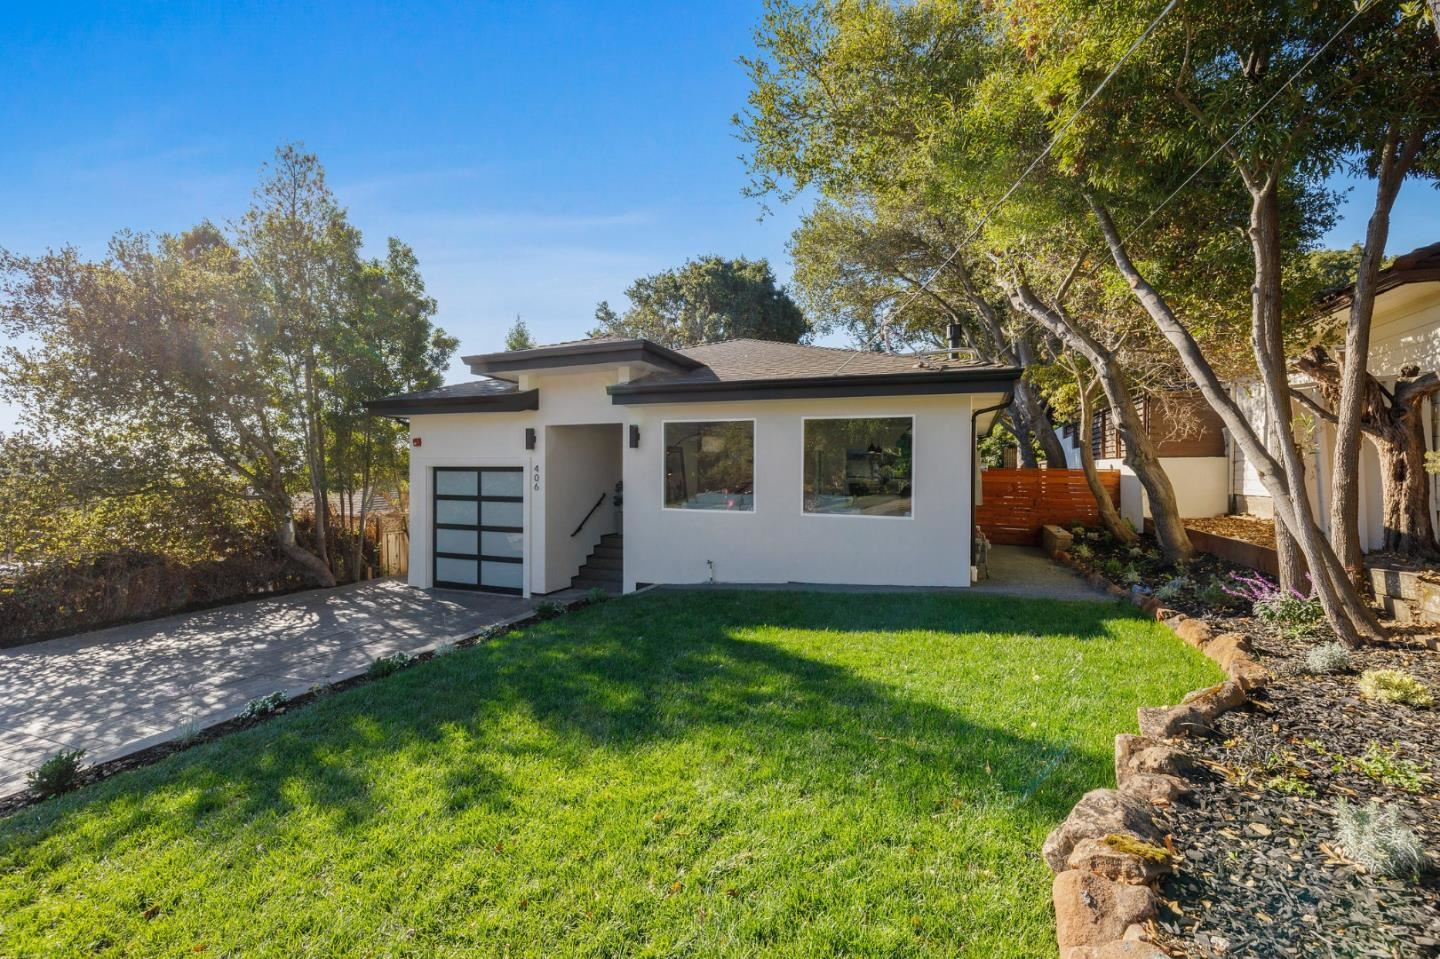 Photo for 406 Alameda De Las Pulgas, BELMONT, CA 94002 (MLS # ML81816993)